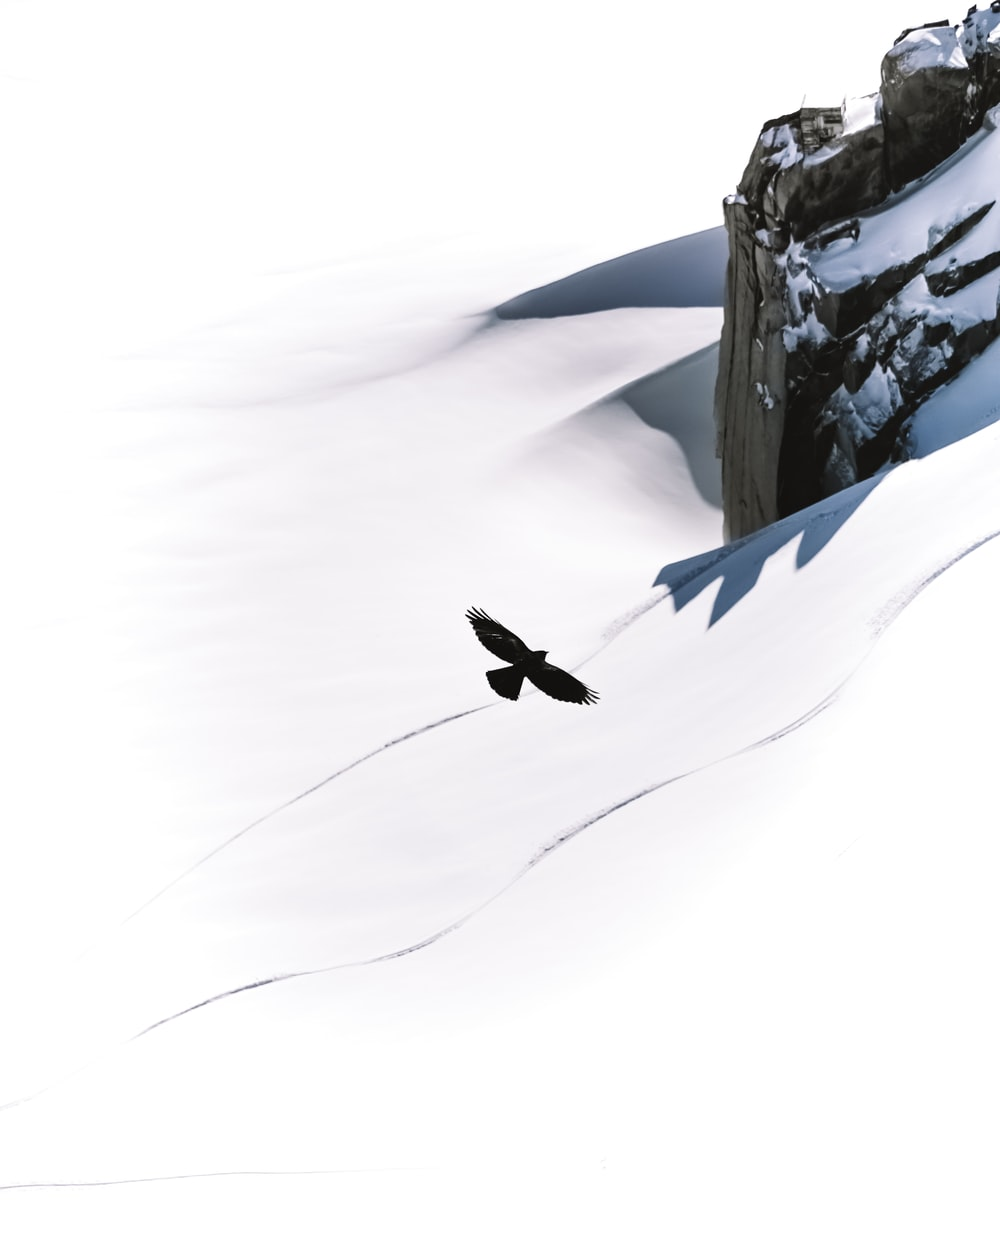 black bird flying over snow covered mountain during daytime